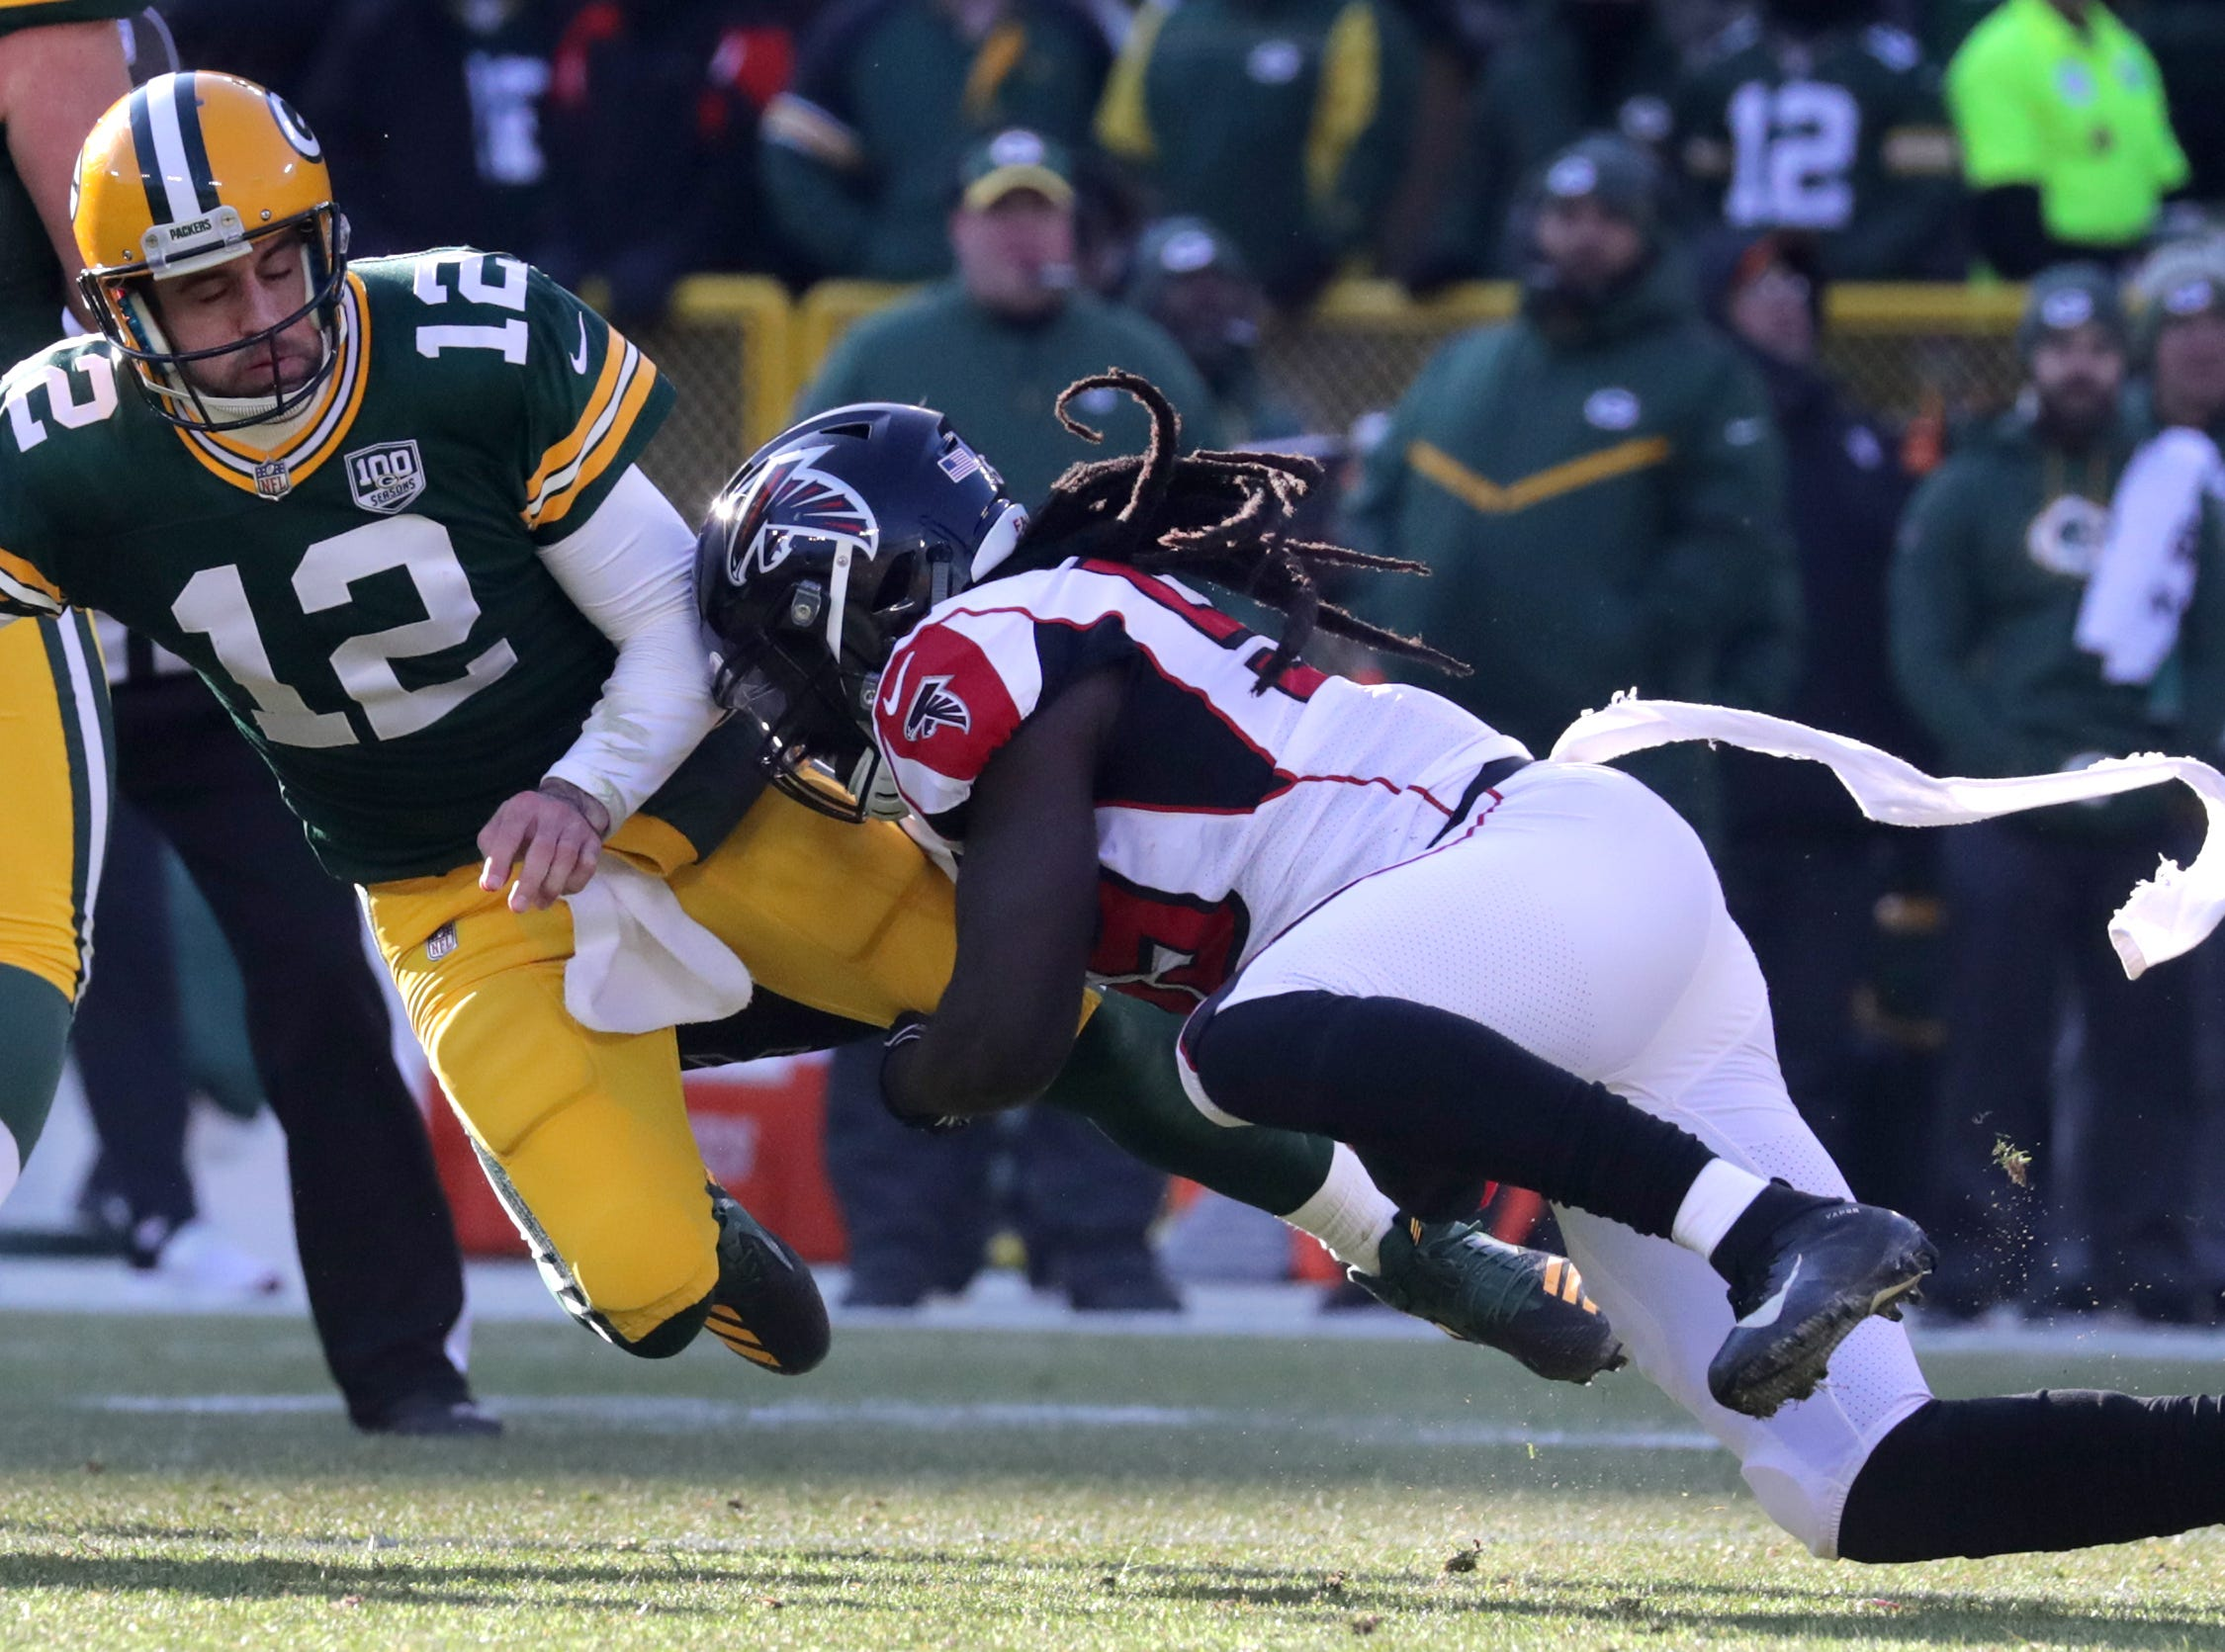 Green Bay Packers quarterback Aaron Rodgers is sacked by Atlanta Falcons outside linebacker De'Vondre Campbell in the first half during their football game on Sunday, December 9, 2018, at Lambeau Field in Green Bay, Wis.